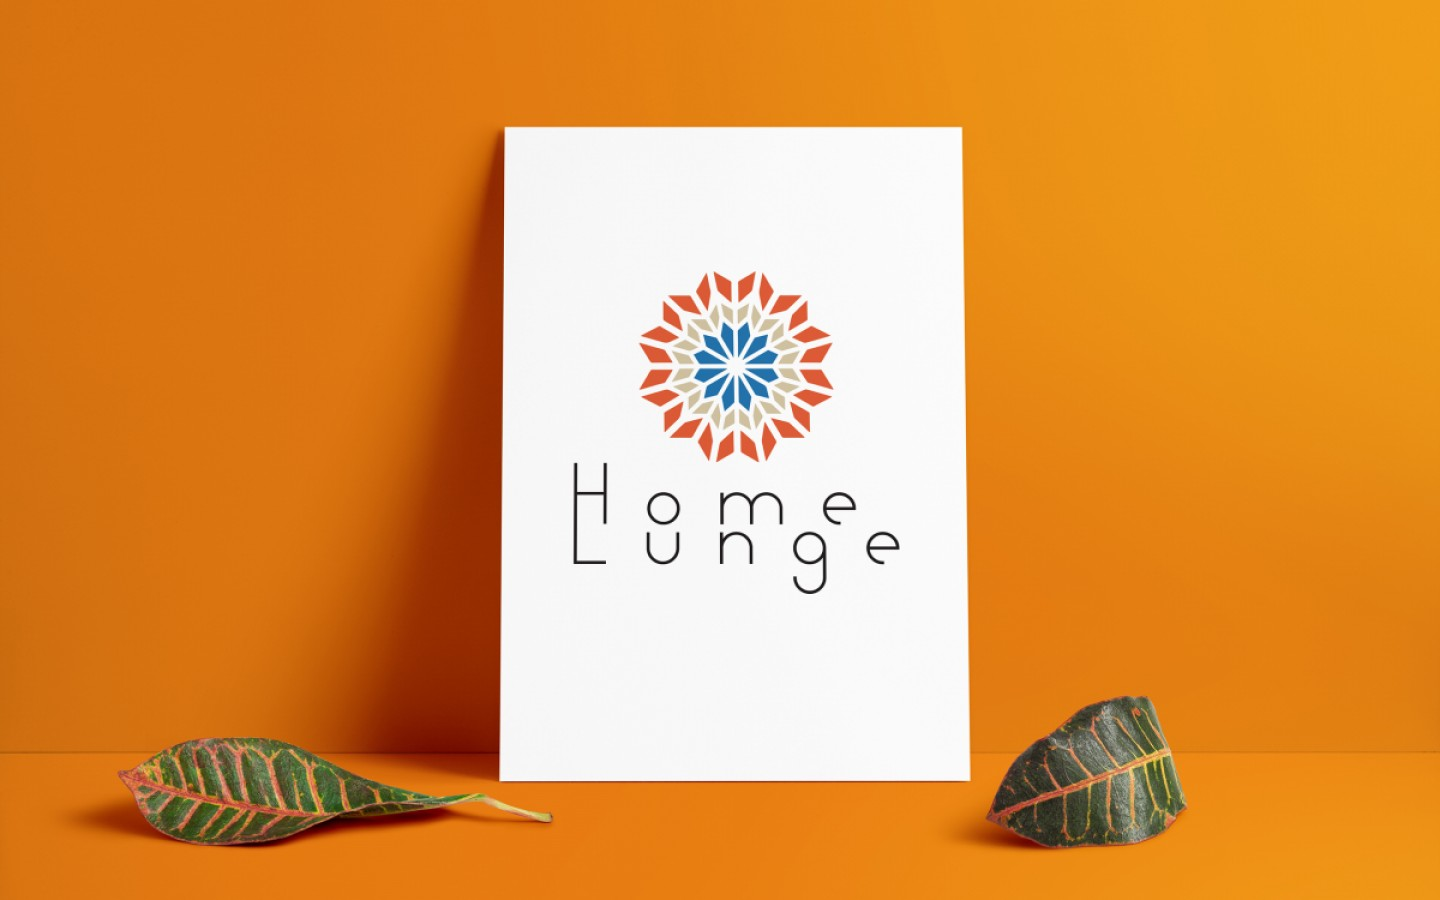 VISUAL IDENTITY & INTERIOR DESIGN - HOME LUNGE